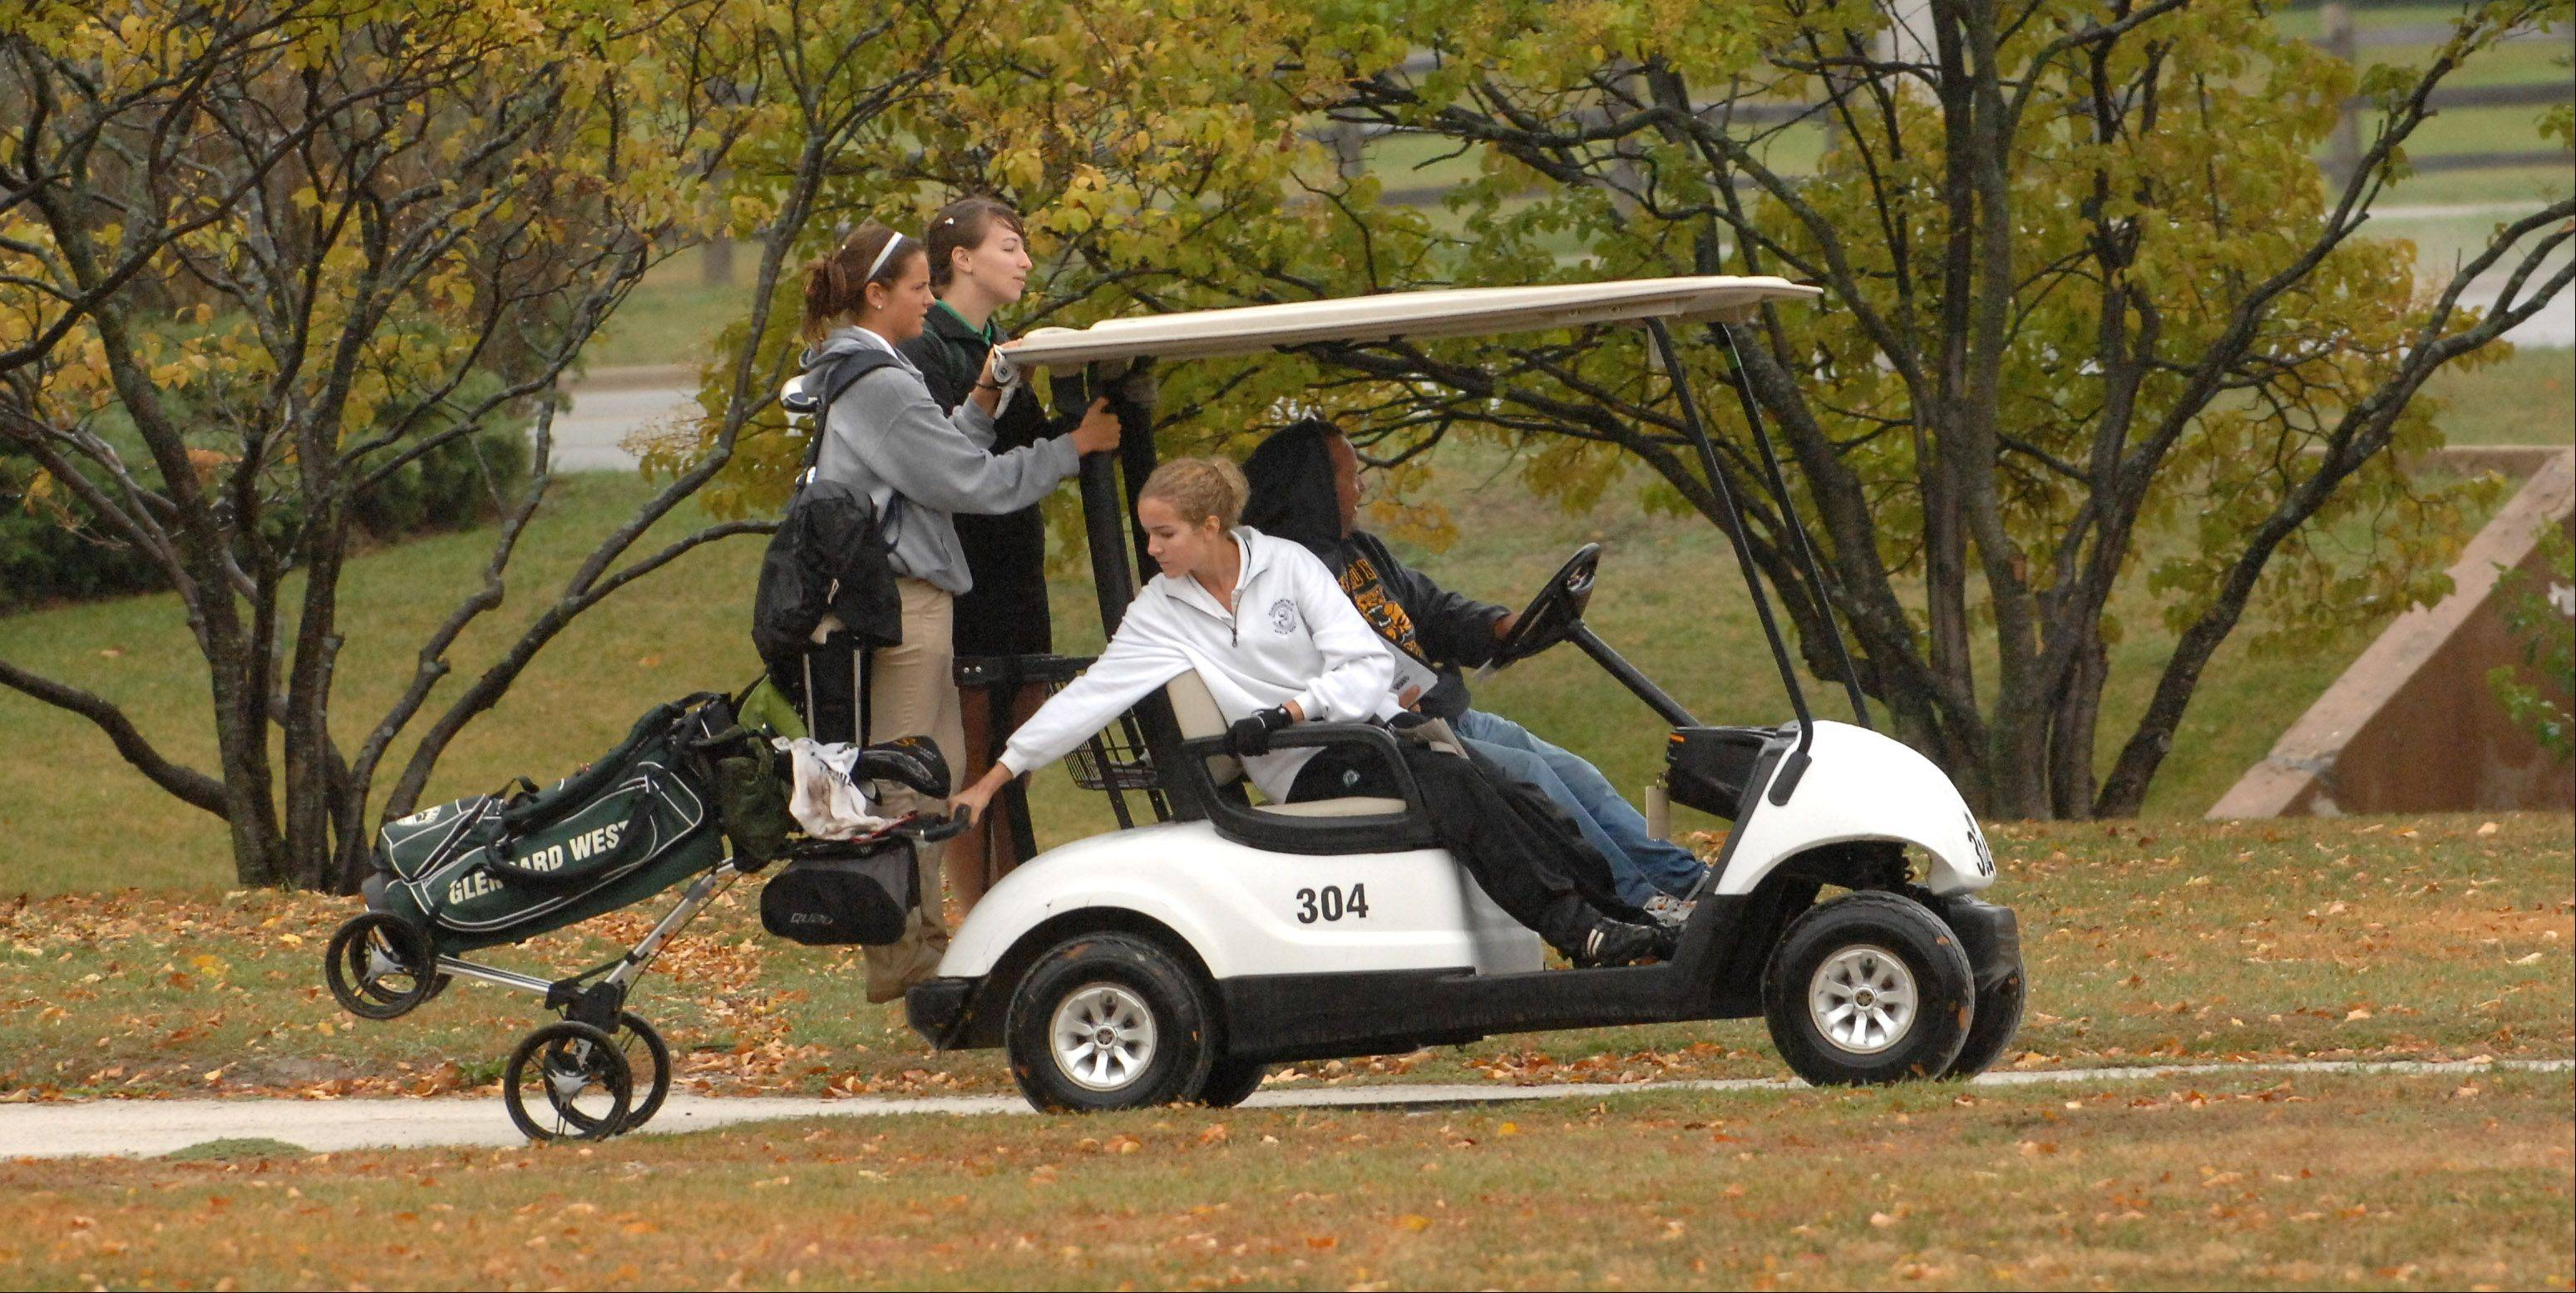 A soaking rain dogged the golfers at Wednesday's York girls golf regional at Maple Meadows Golf Course in Wood Dale. From left, Tessa Dittmann from West Chicago, Kerri Carlquist from York, and Emma Klimala from Glenbard West, get a lift between holes.